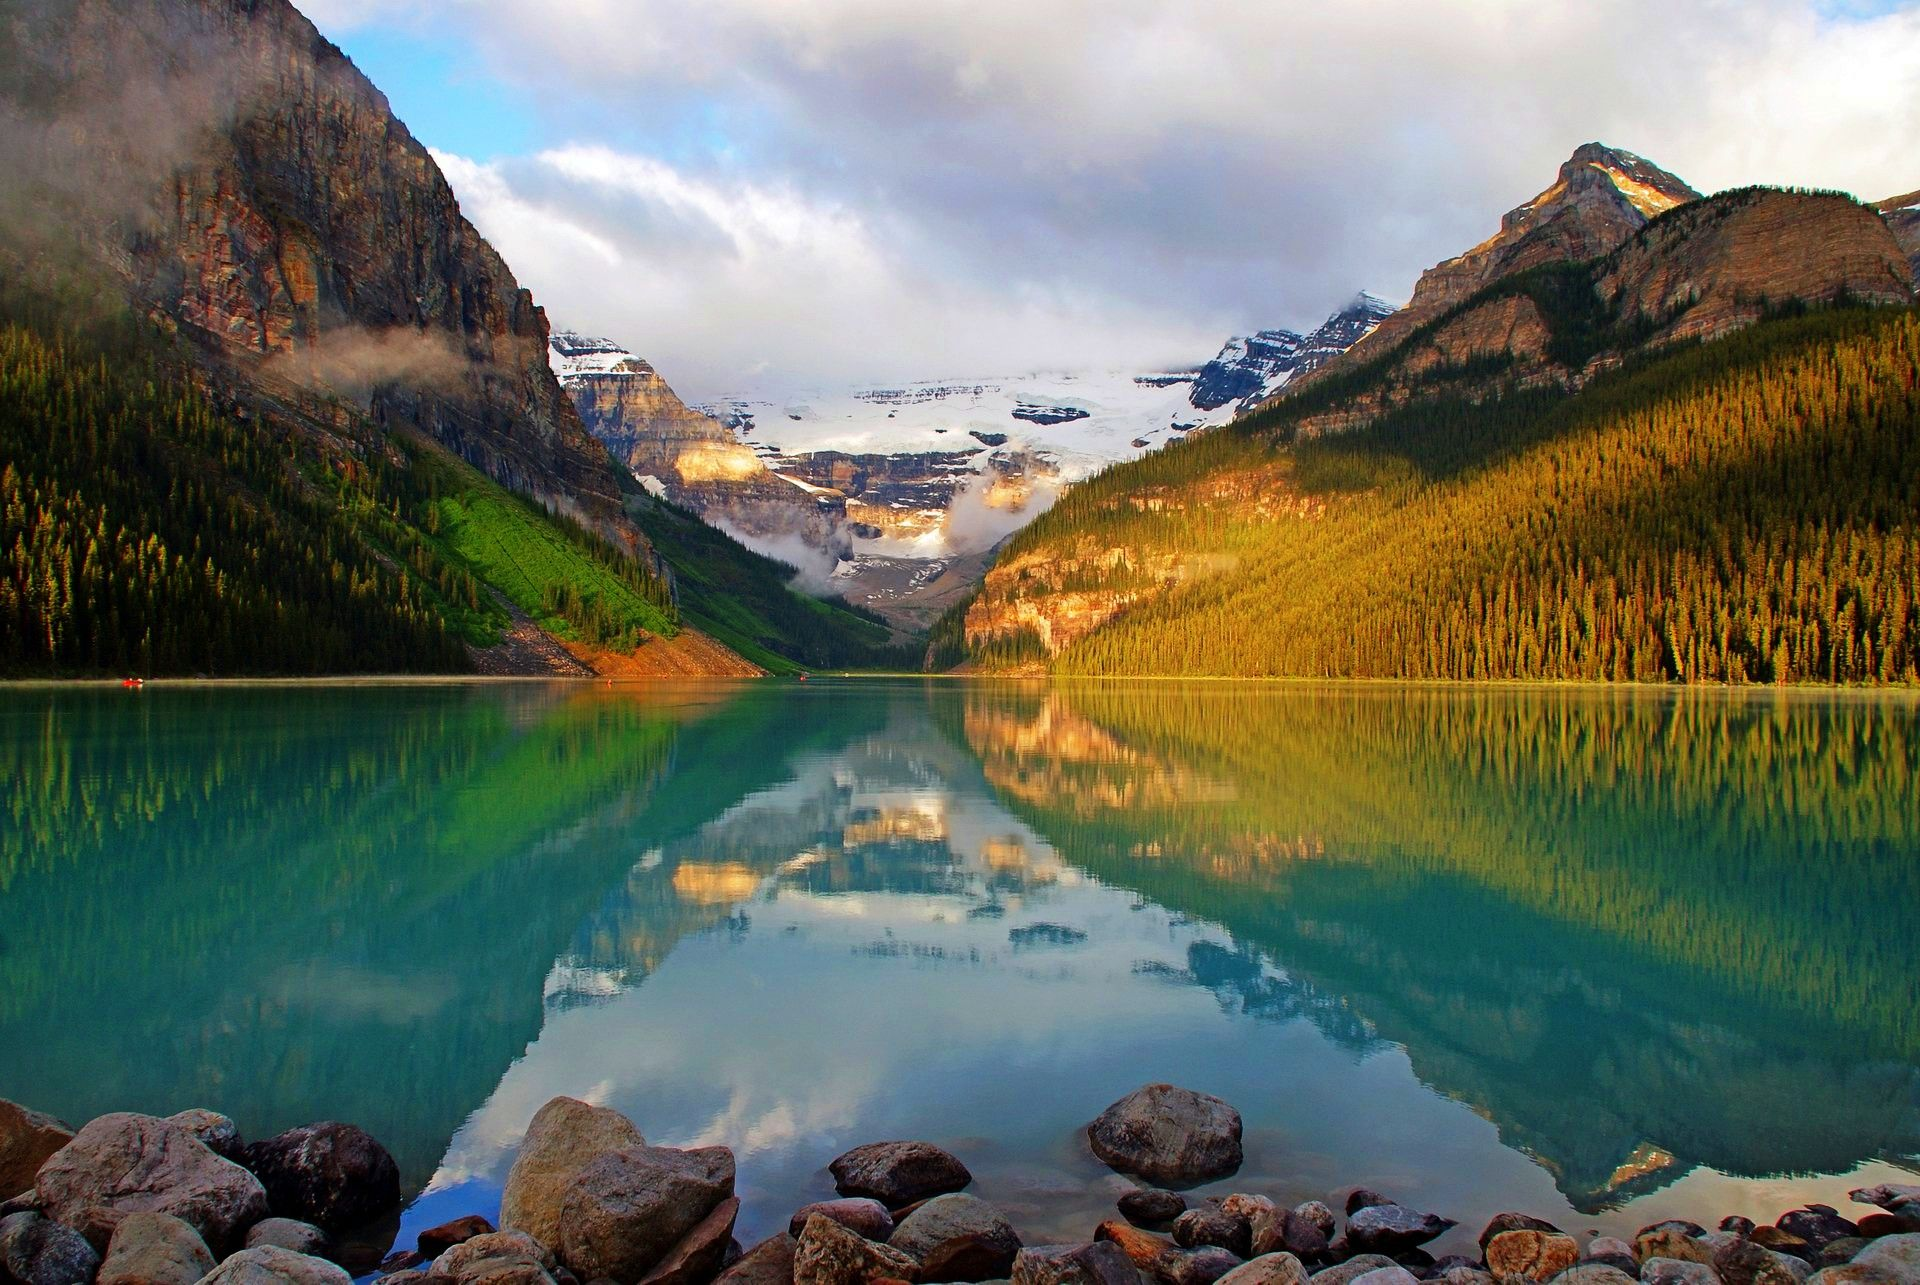 Canadian Rockies At Leisure. Travel Blog, Rocky Mountaineer Luxury Travel. Travel Vancouver | Vancouver Tours by Bus and Train. Canada, Lake Louise, Fairmont Chateau Lake Louise